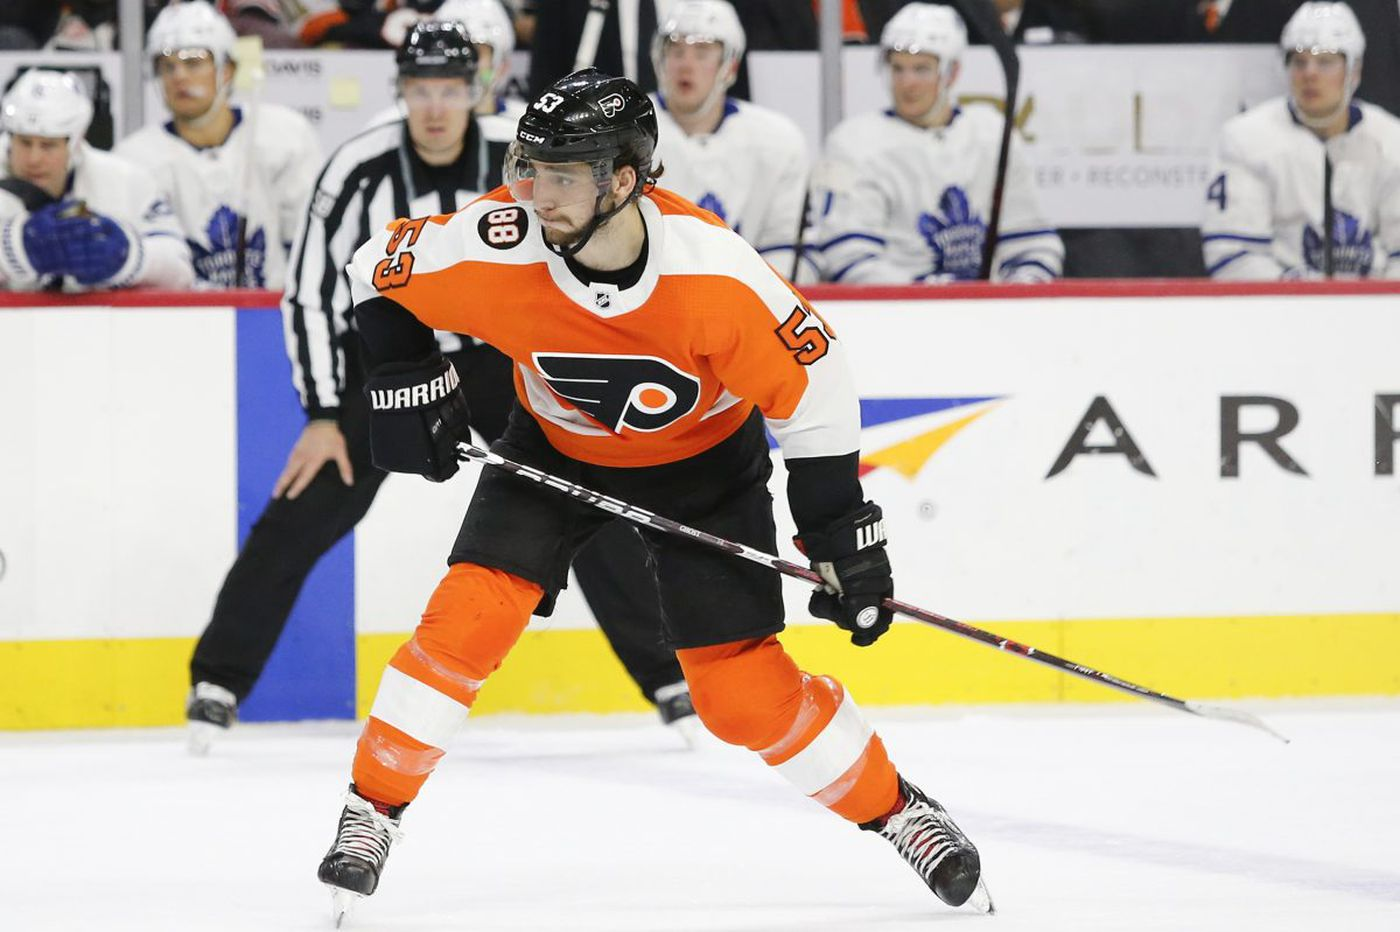 Flyers' Shayne Gostisbehere 'extremely saddened' by shootings at his former high school